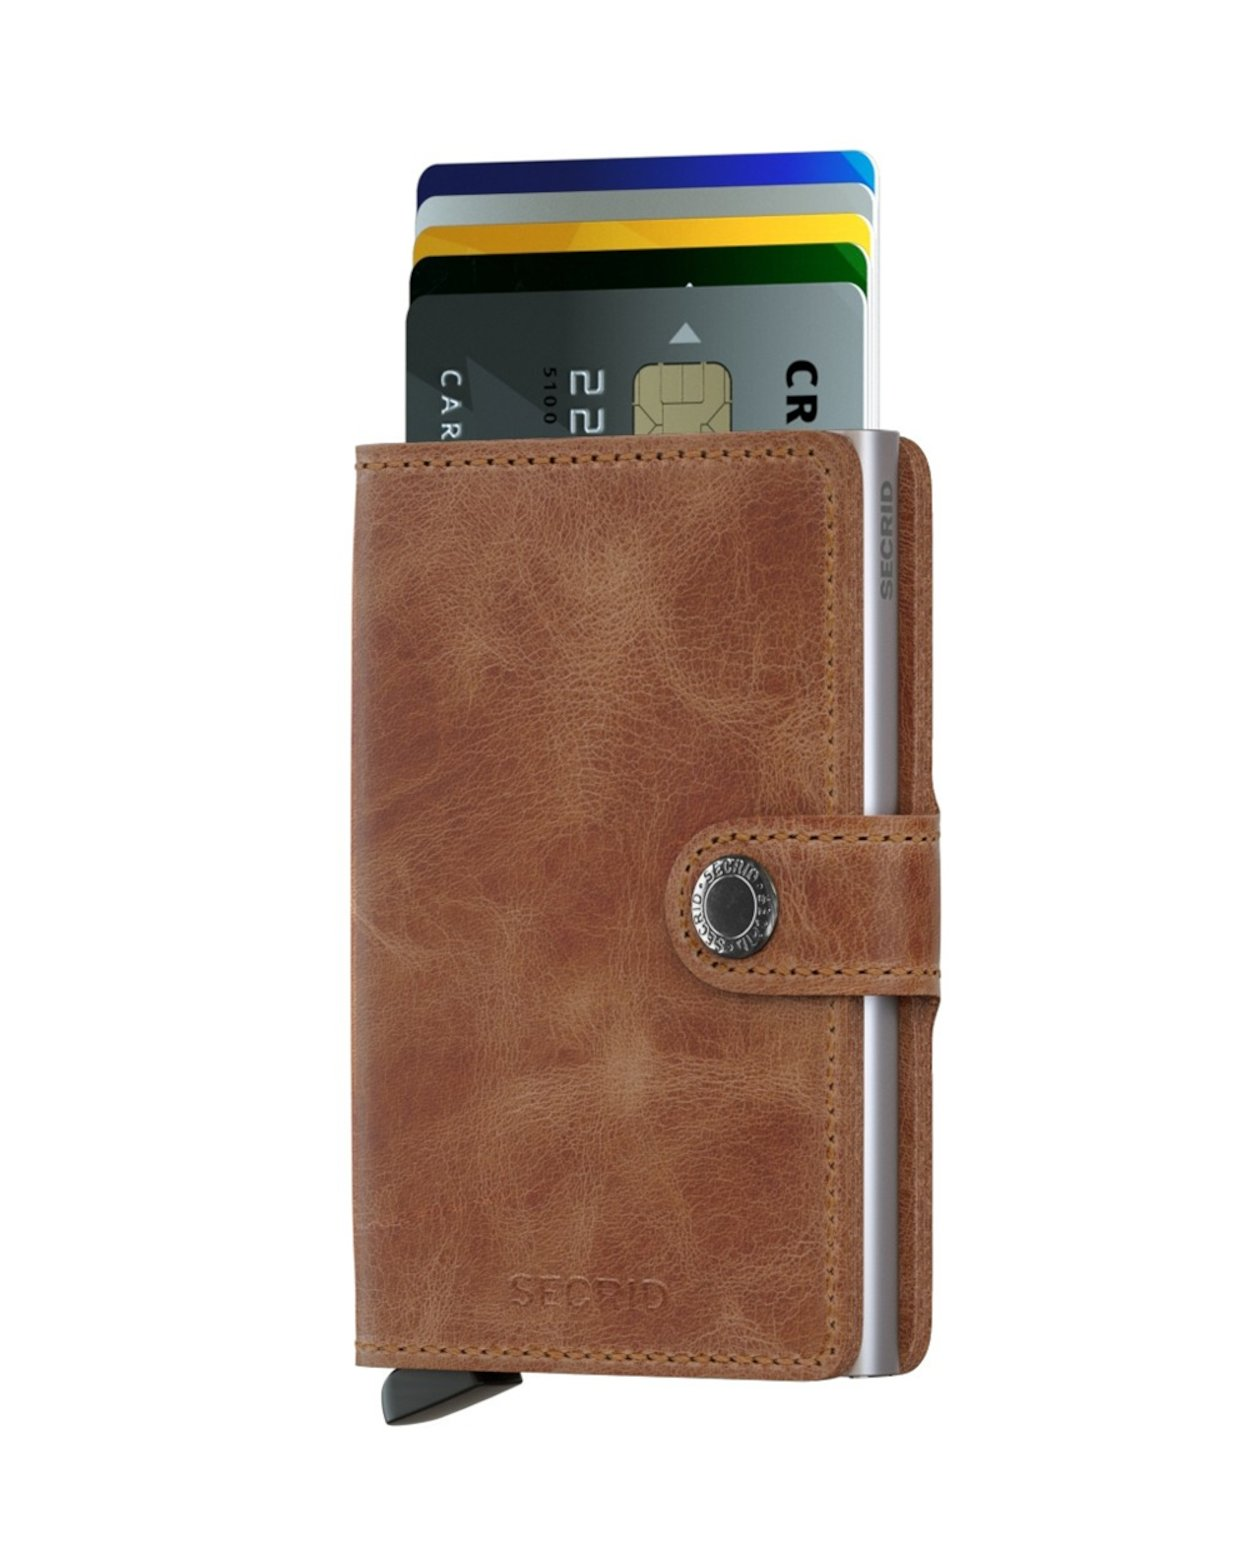 Secrid Wallet and Card Protector in Vintage Cognac Rust